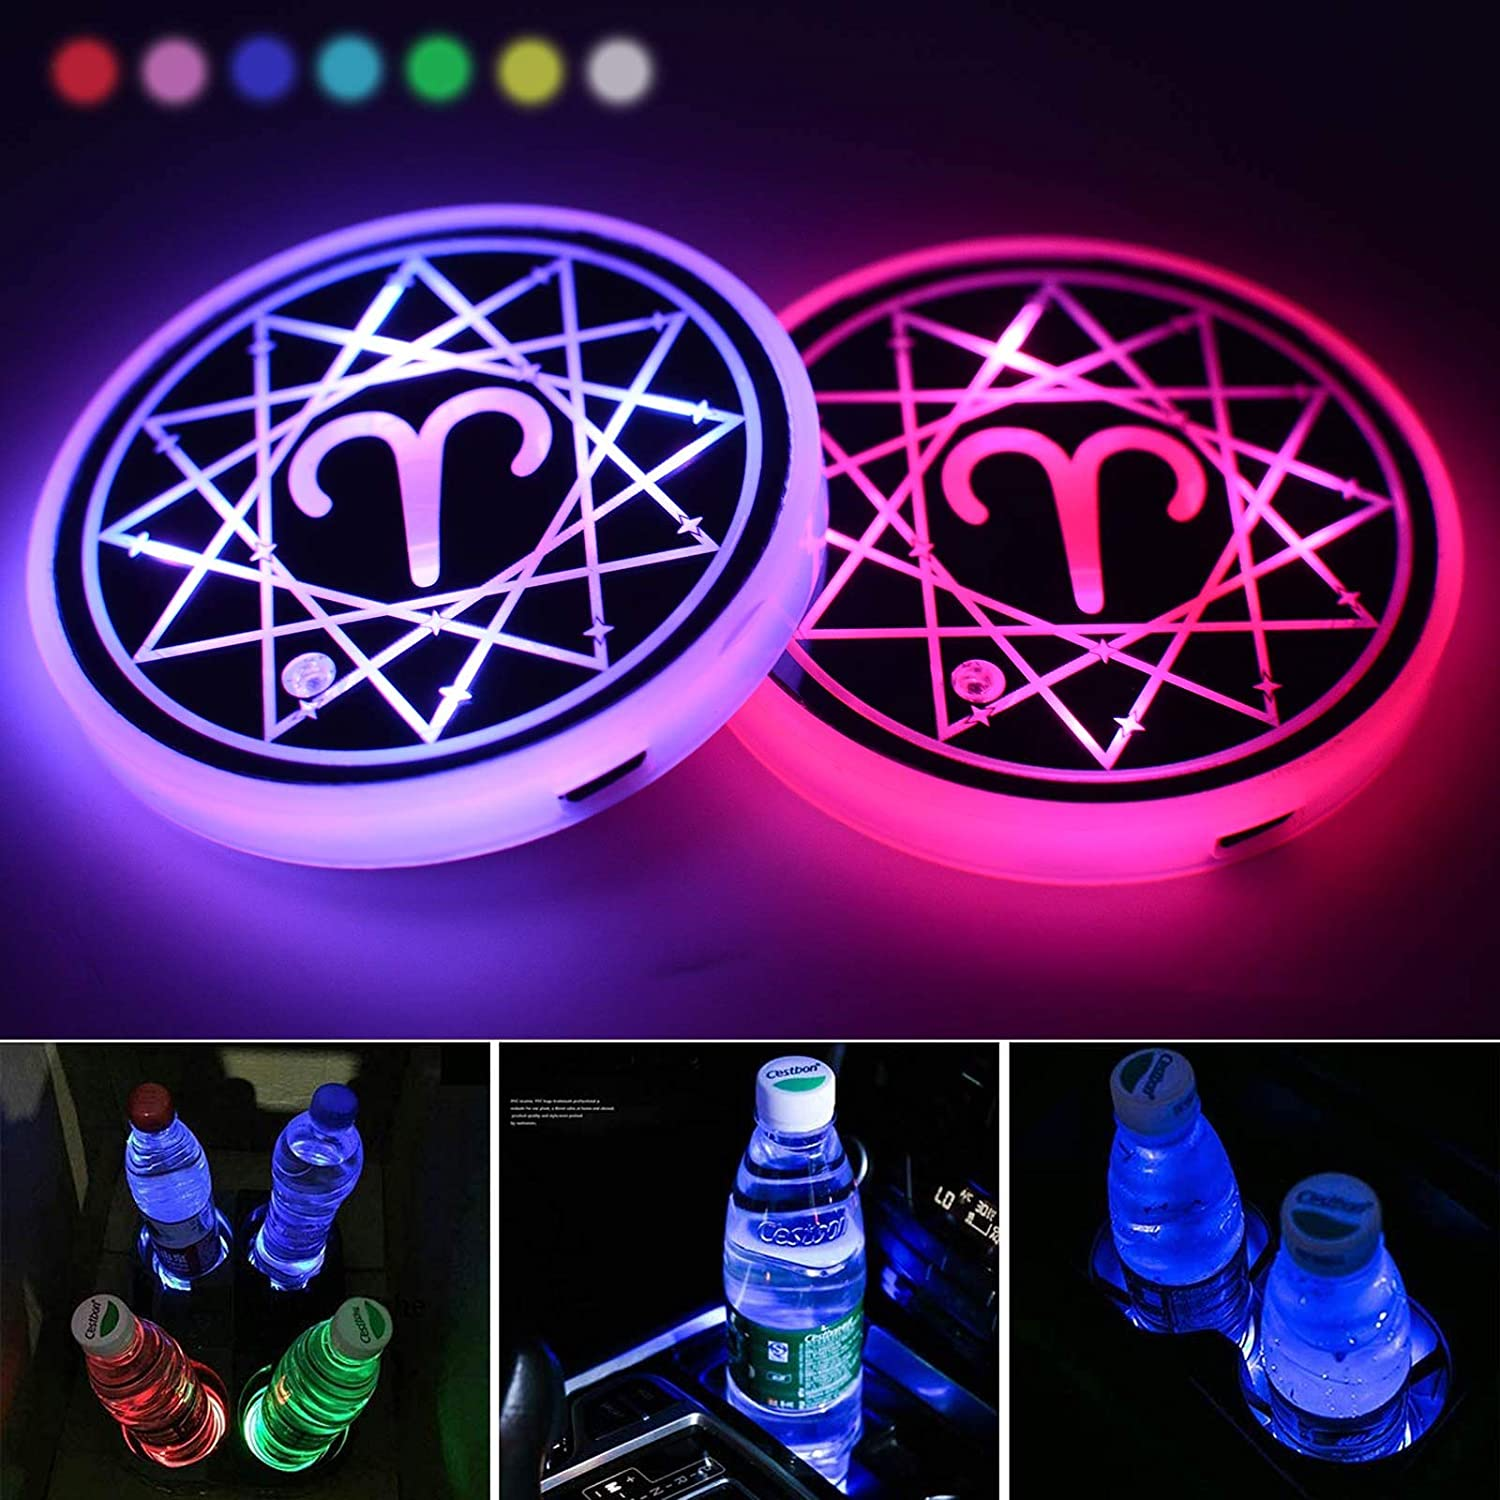 Luminescent Constellation Cup Pad Interior Atmosphere Lamp Decoration Light Sagittarius LED Cup Holder Lights,Sagittarius Car Cup Holder Coaster for Car with 7 Colors Changing USB Charging Mat